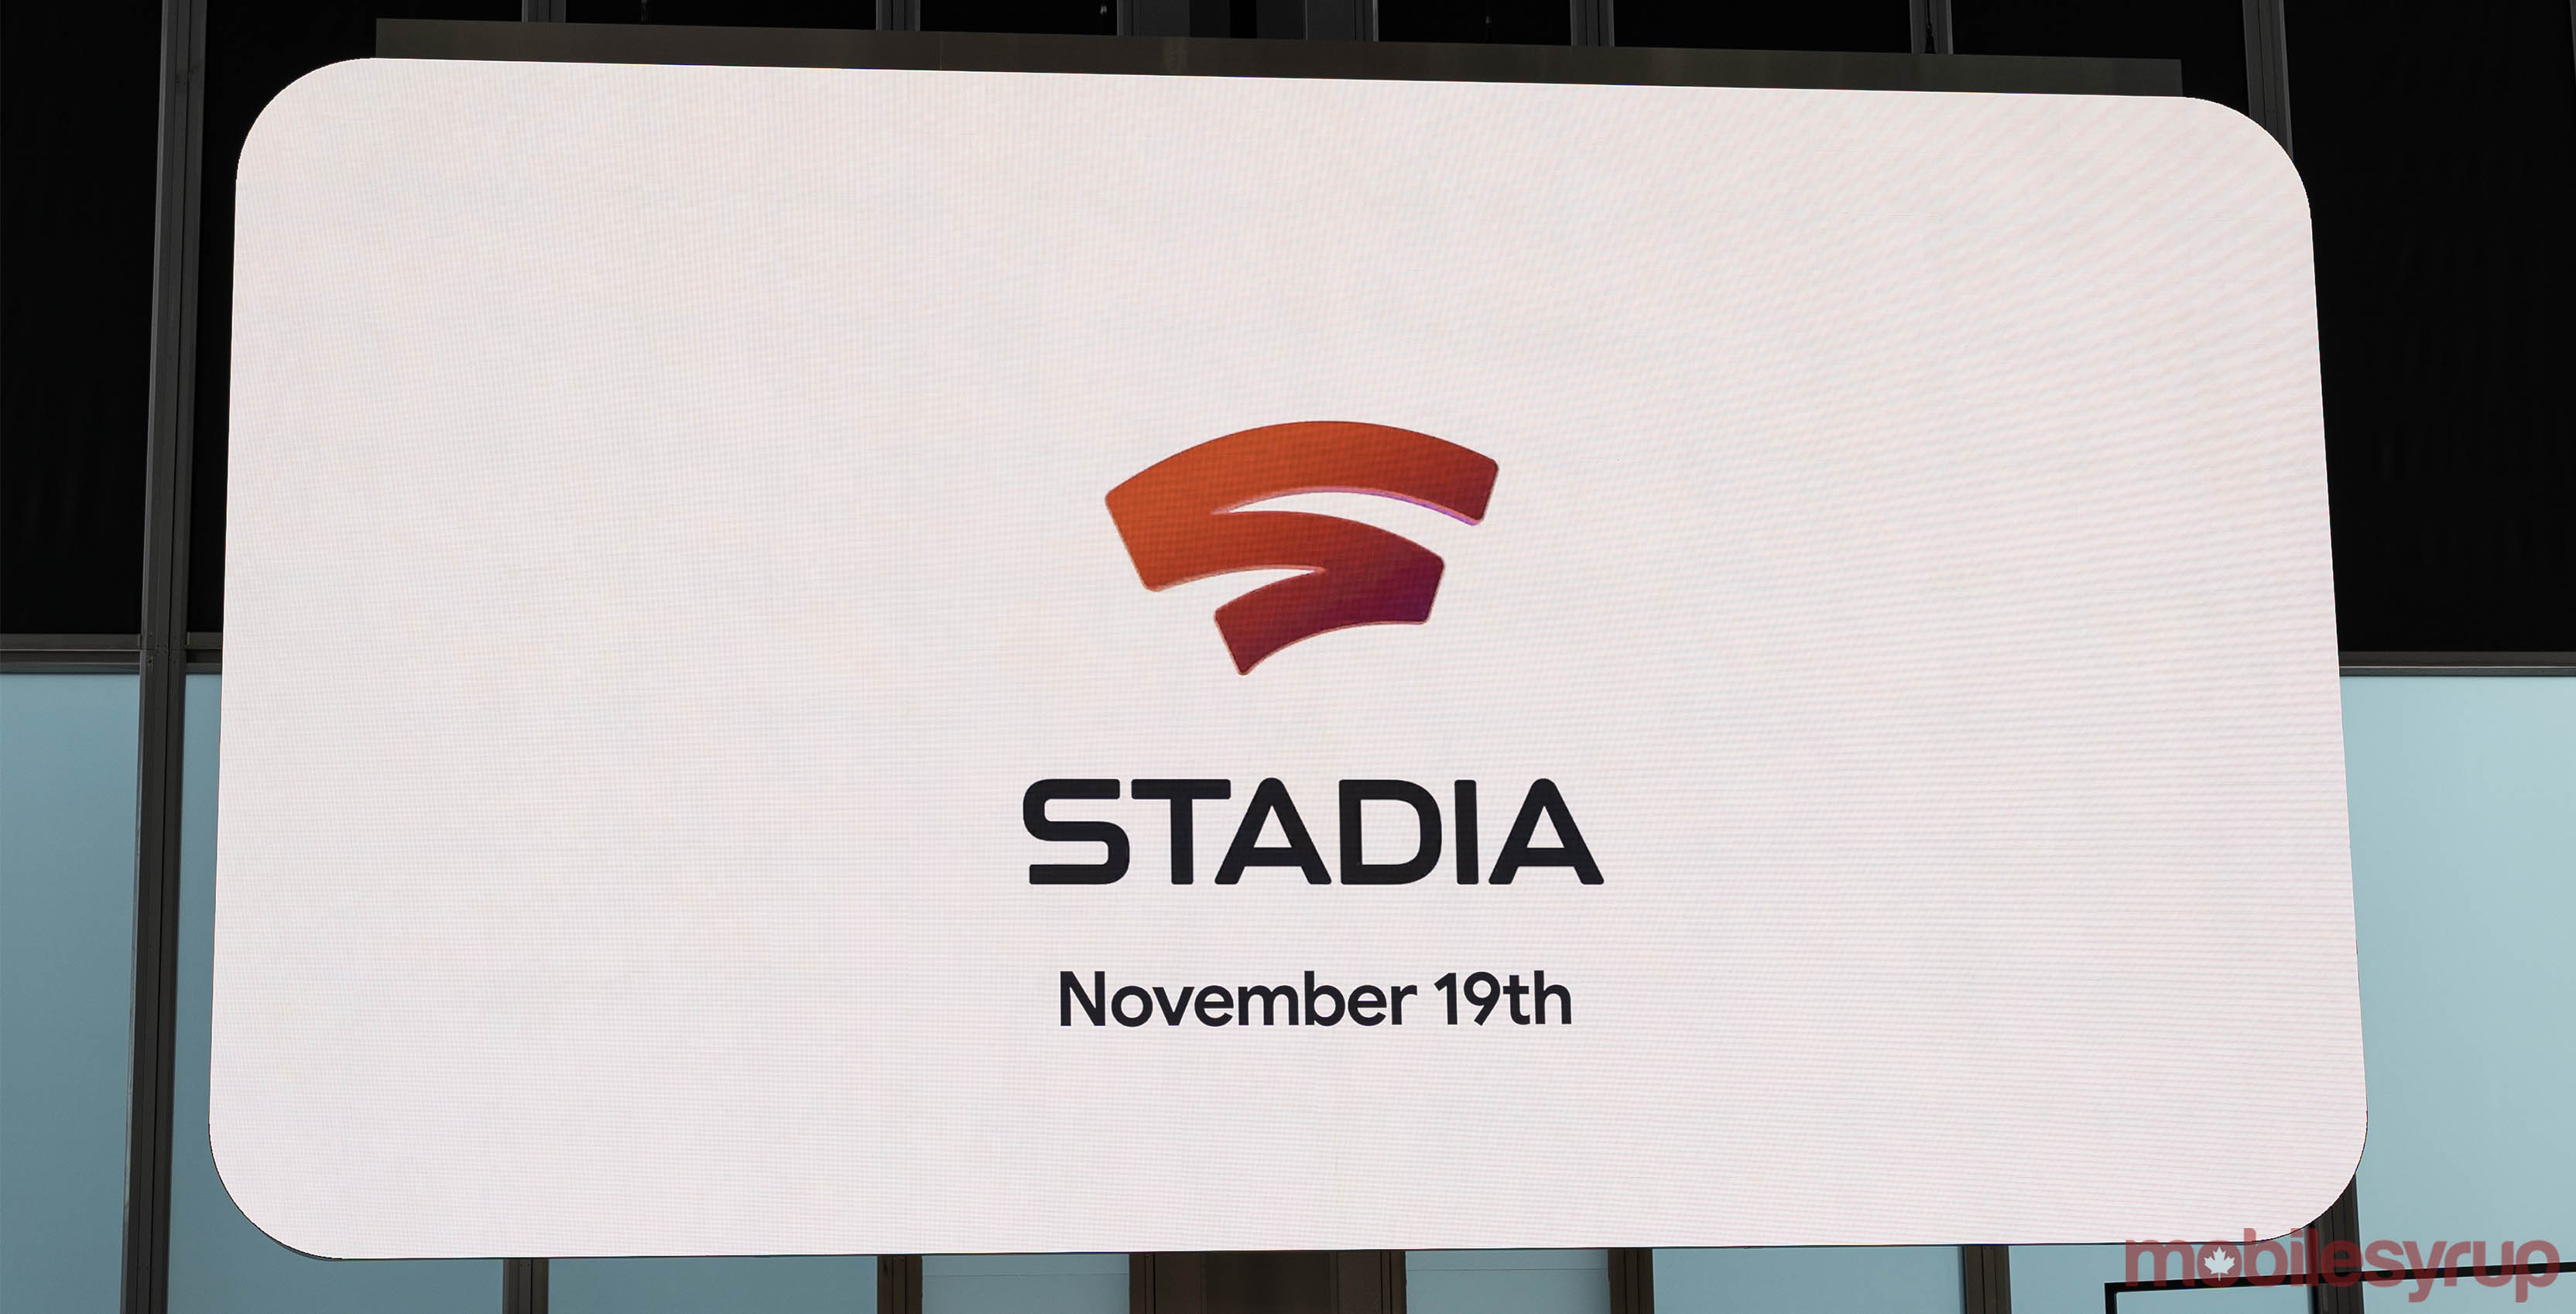 Google Stadia will launch in Canada on November 19